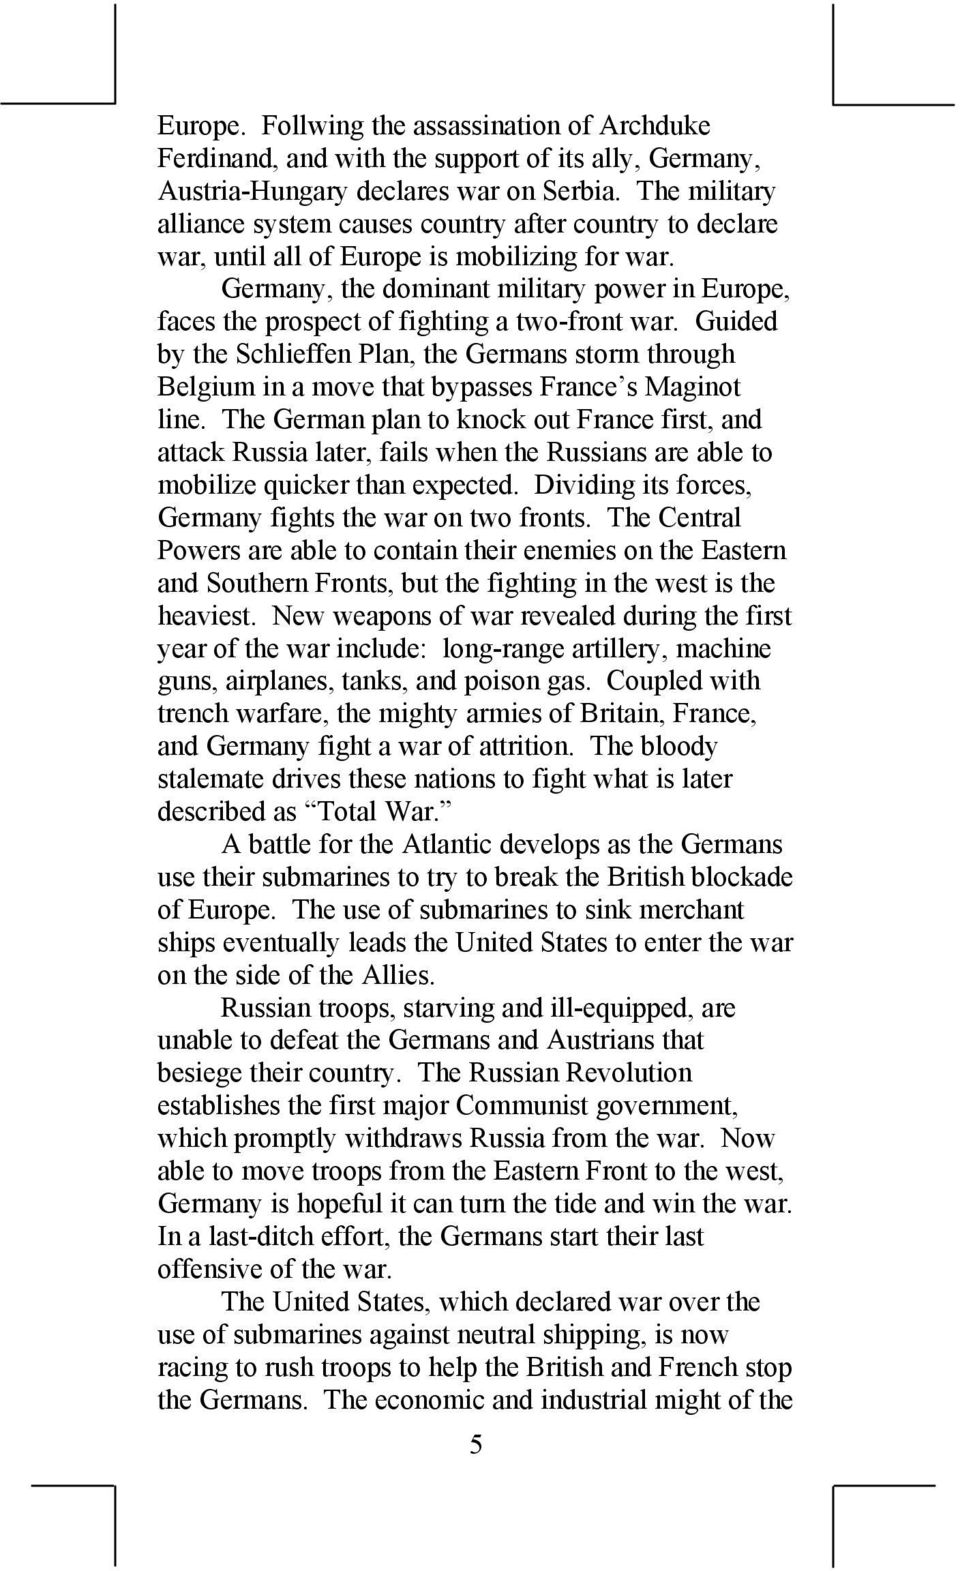 Germany, the dominant military power in Europe, faces the prospect of fighting a two-front war.